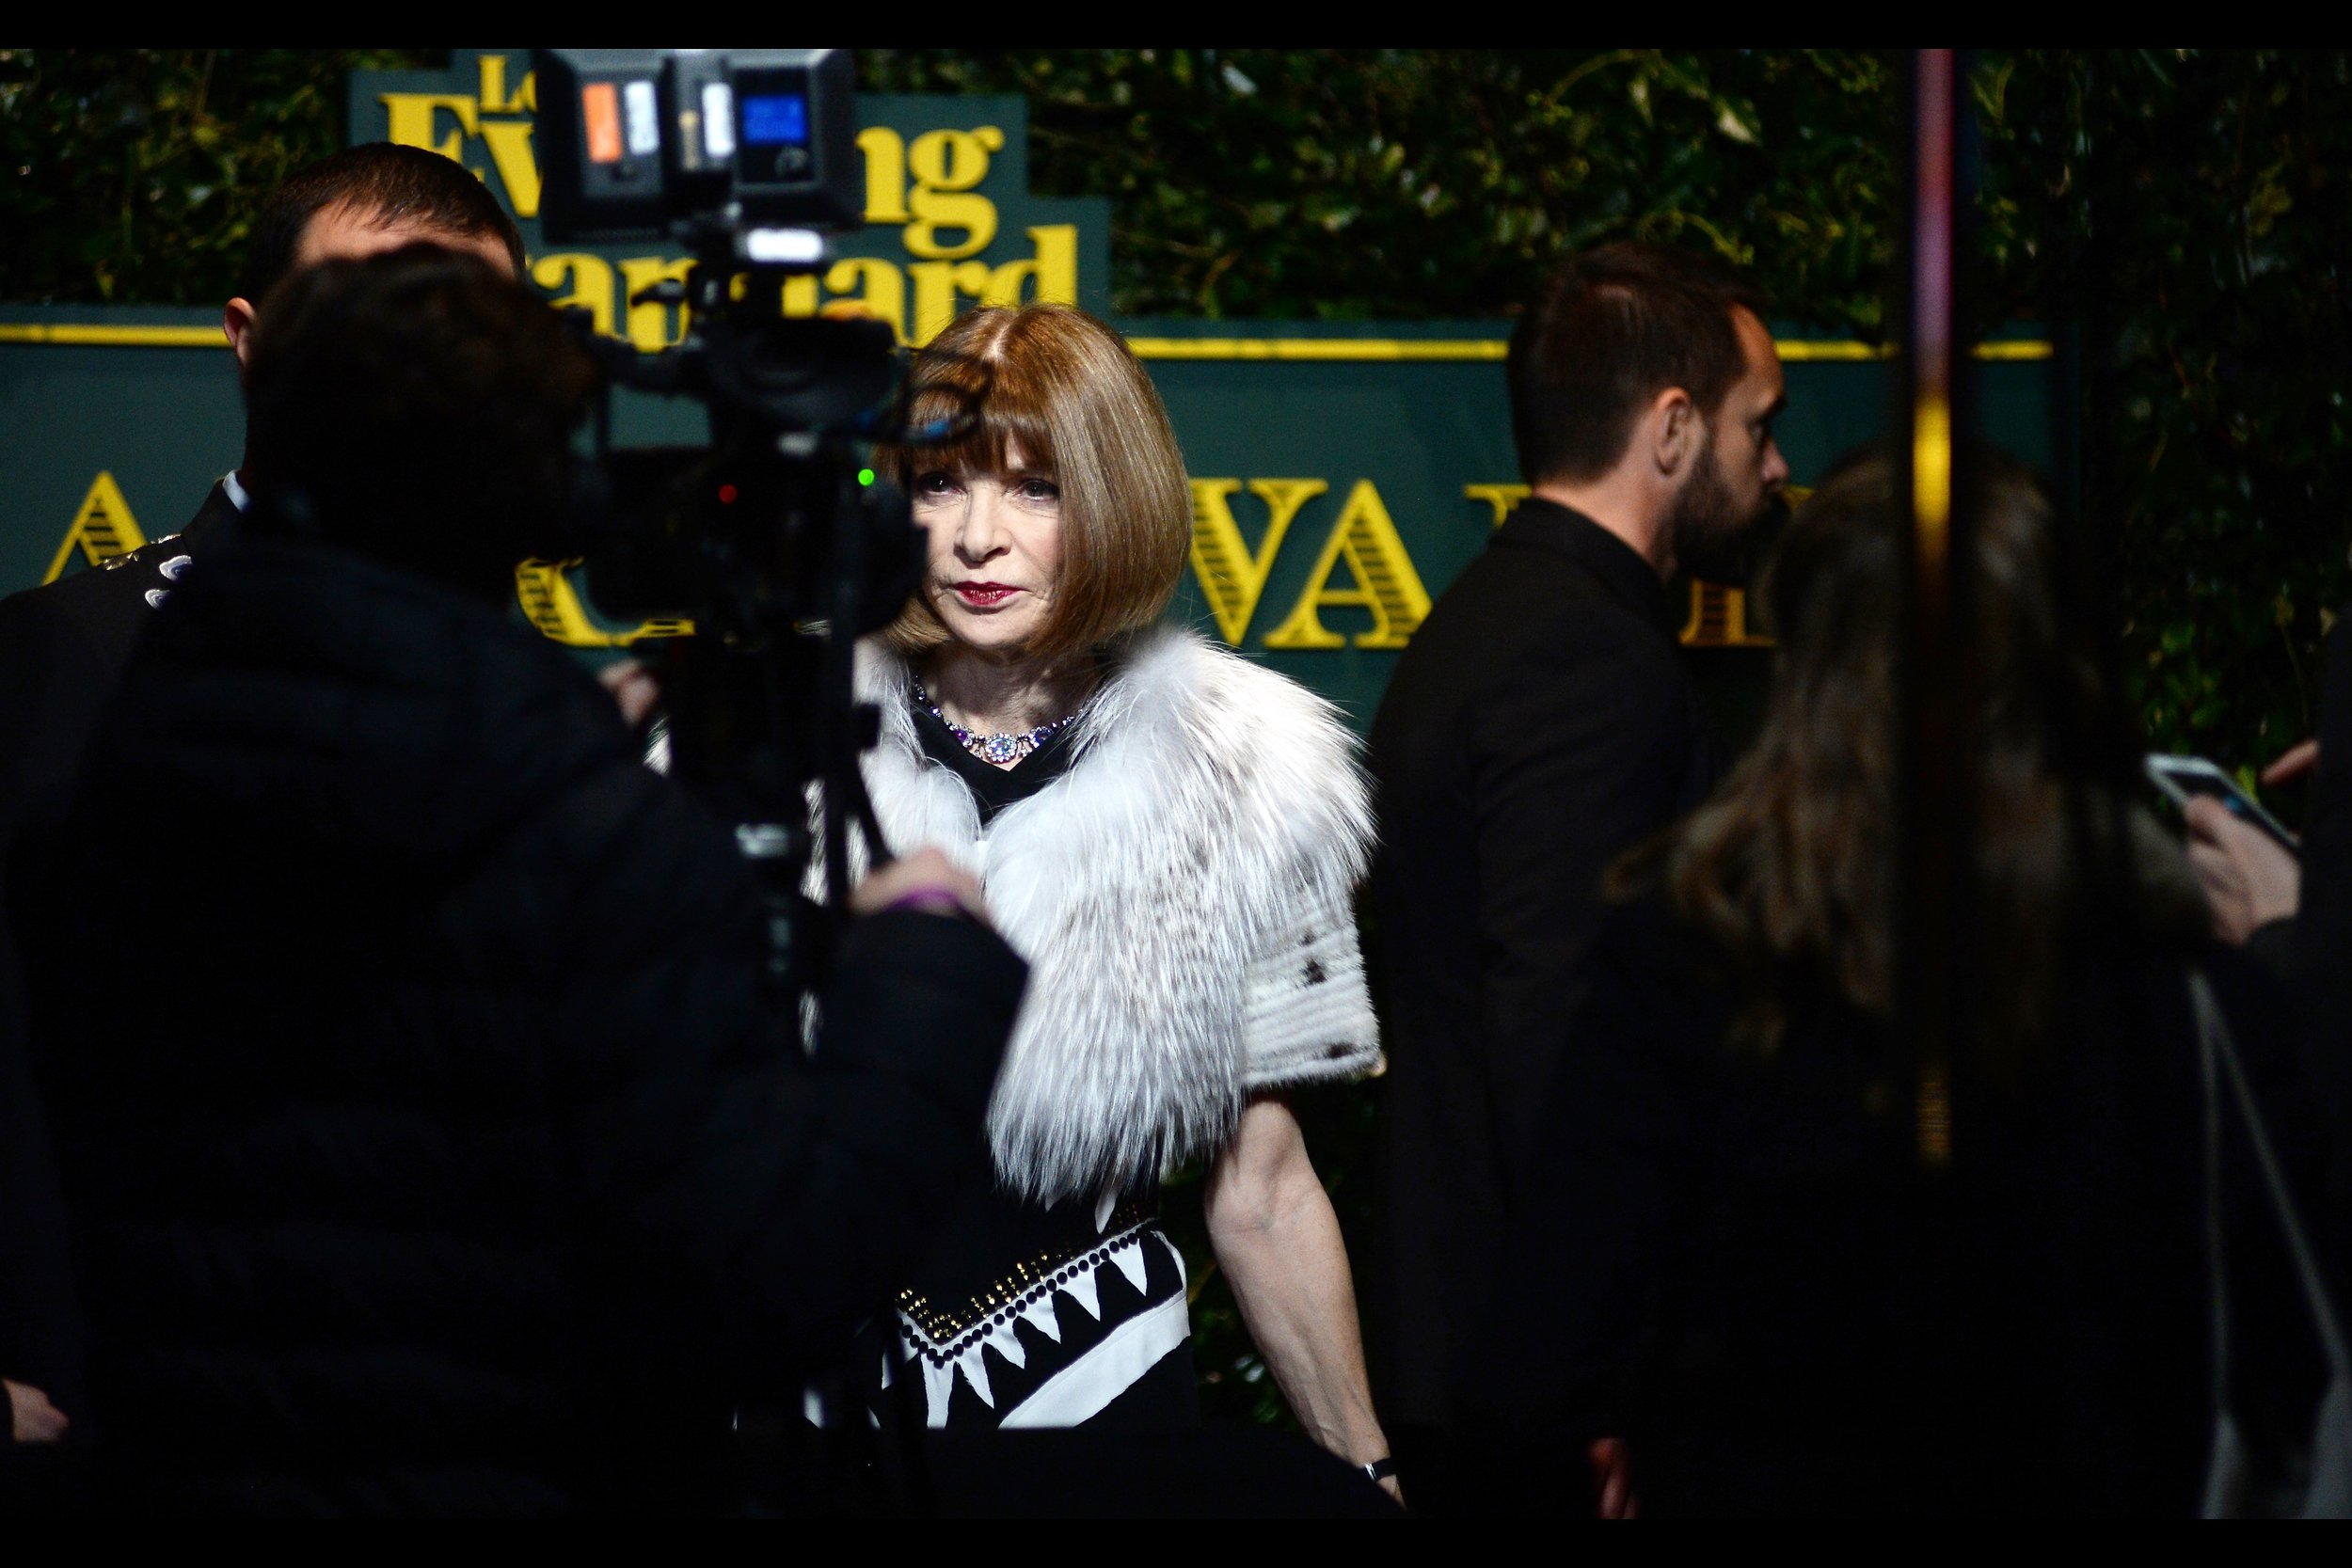 Fashionista Anna Wintour - on the night before the Fashion Awards and WITHOUT glasses. Damnit, if glasses aren't cool anymore then the fashion cred of my daily ensemble rests almost entirely on my off-brand jeans and thinsulate beanie...